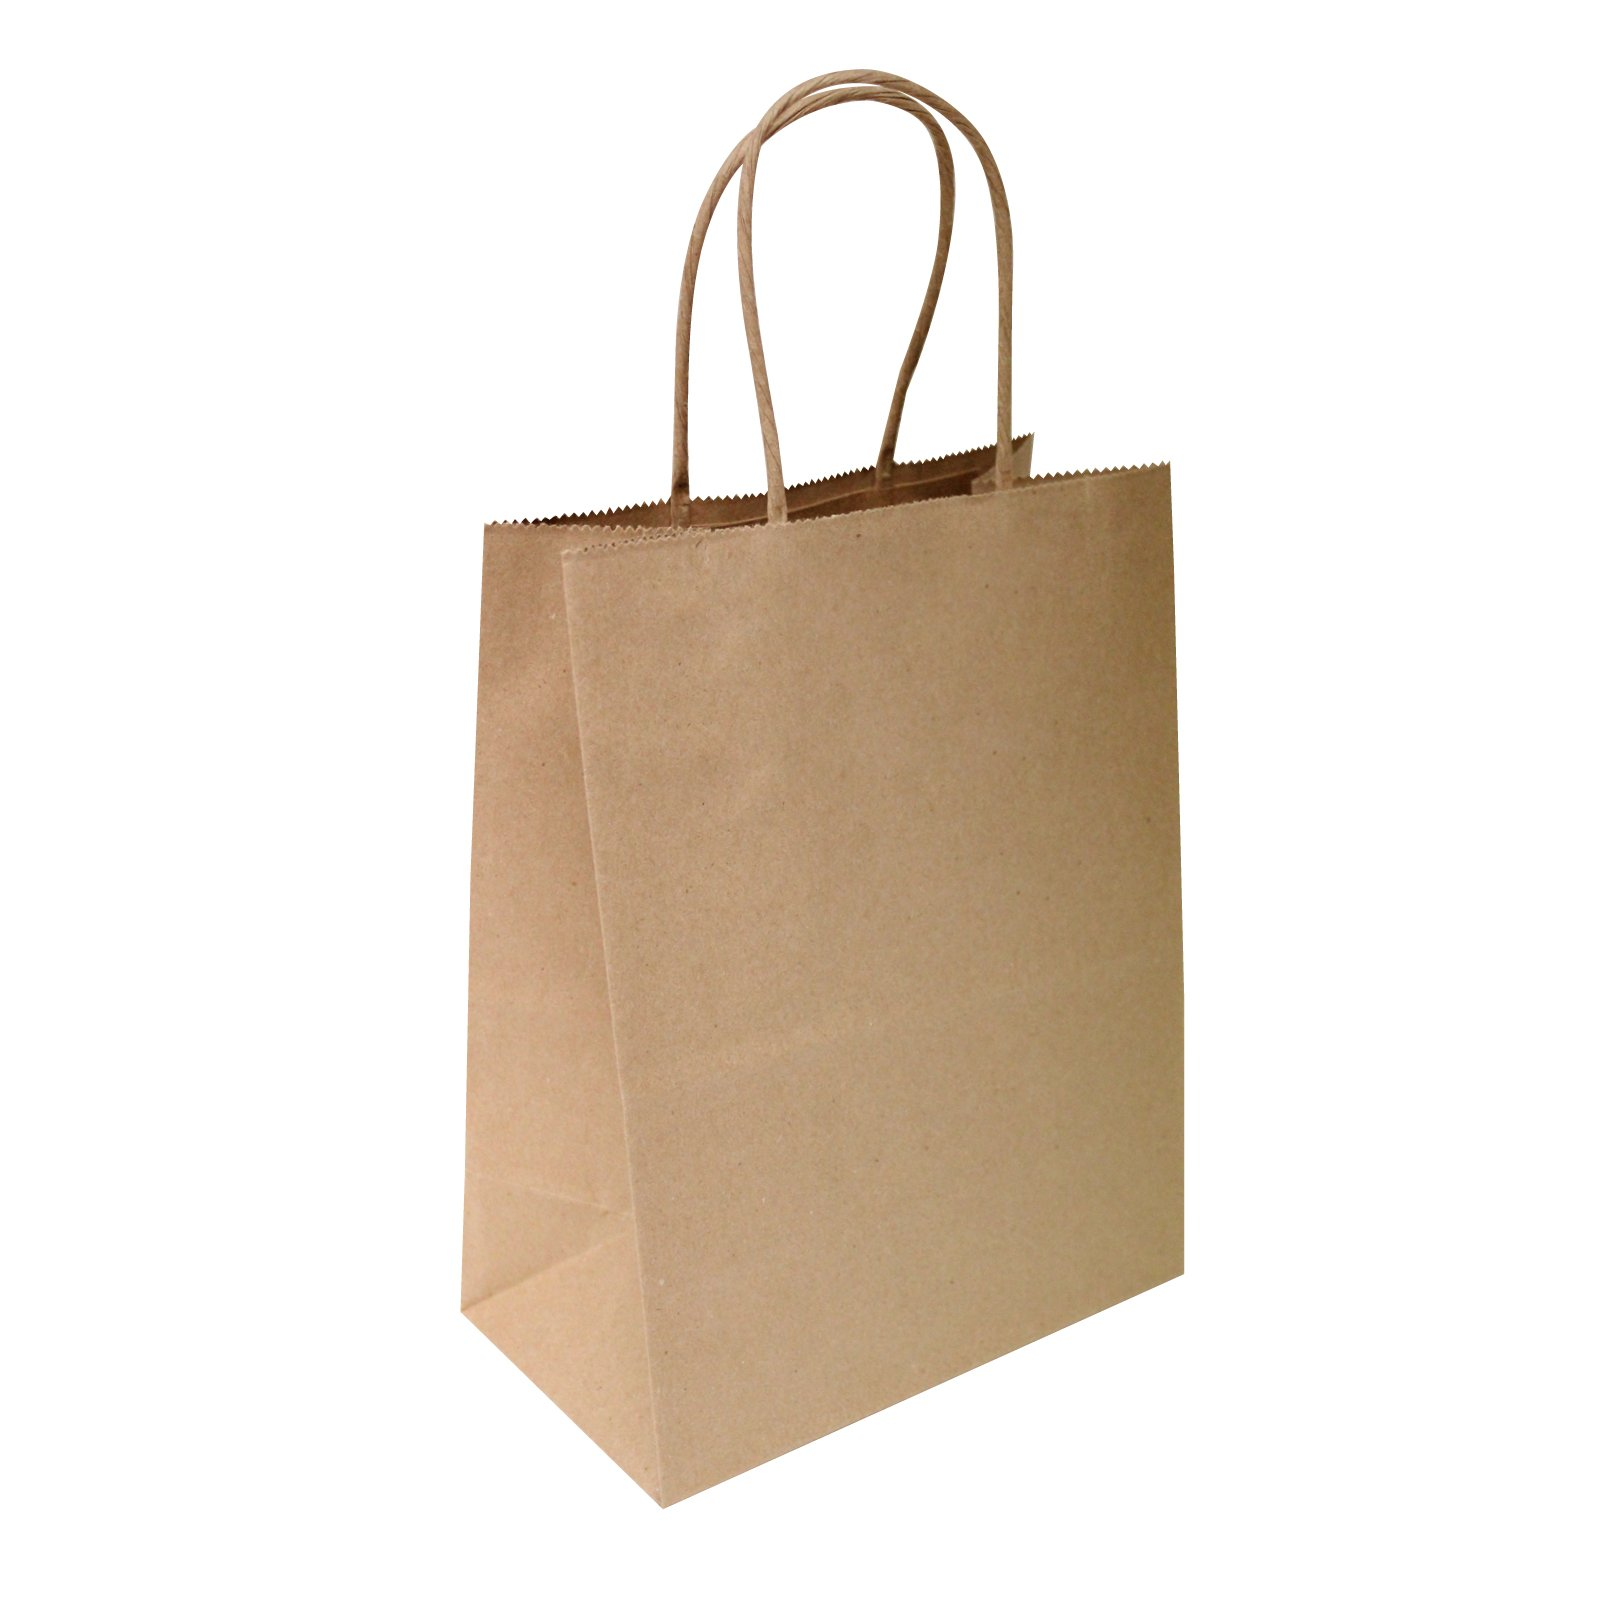 Flexicore Packaging 8''x4.75''x10''-100 Pcs-Brown Kraft Paper Shopping, Mechandise, Party, Gift Bags